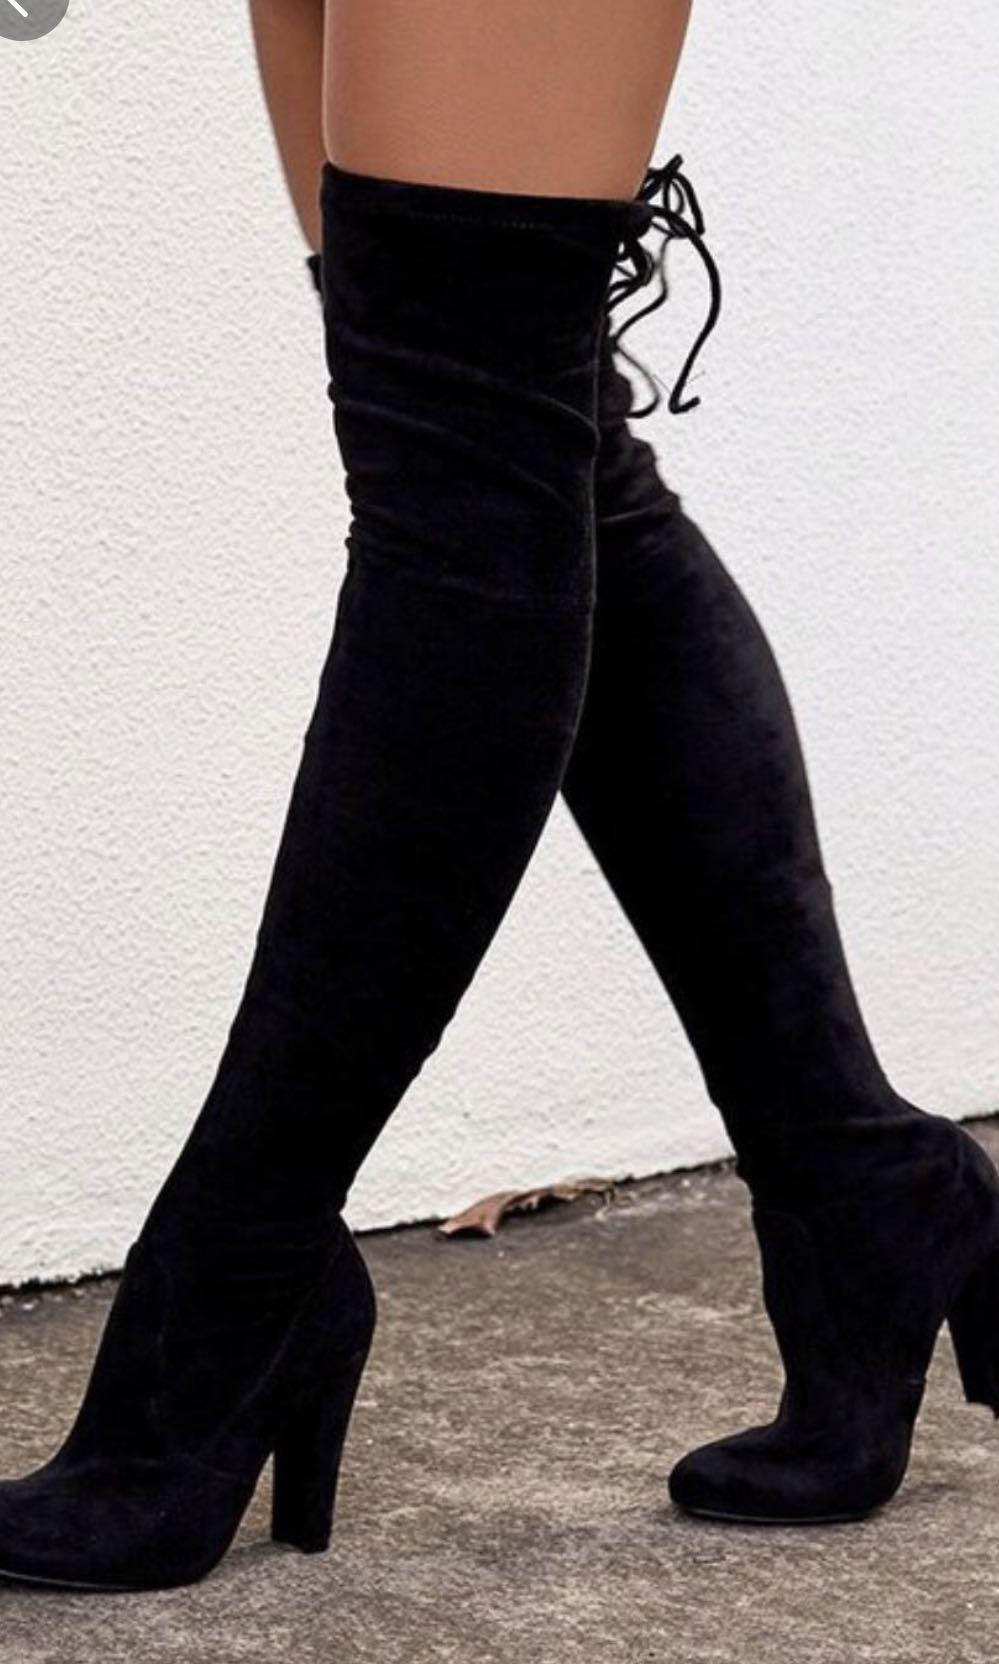 Scarlet knee high boots